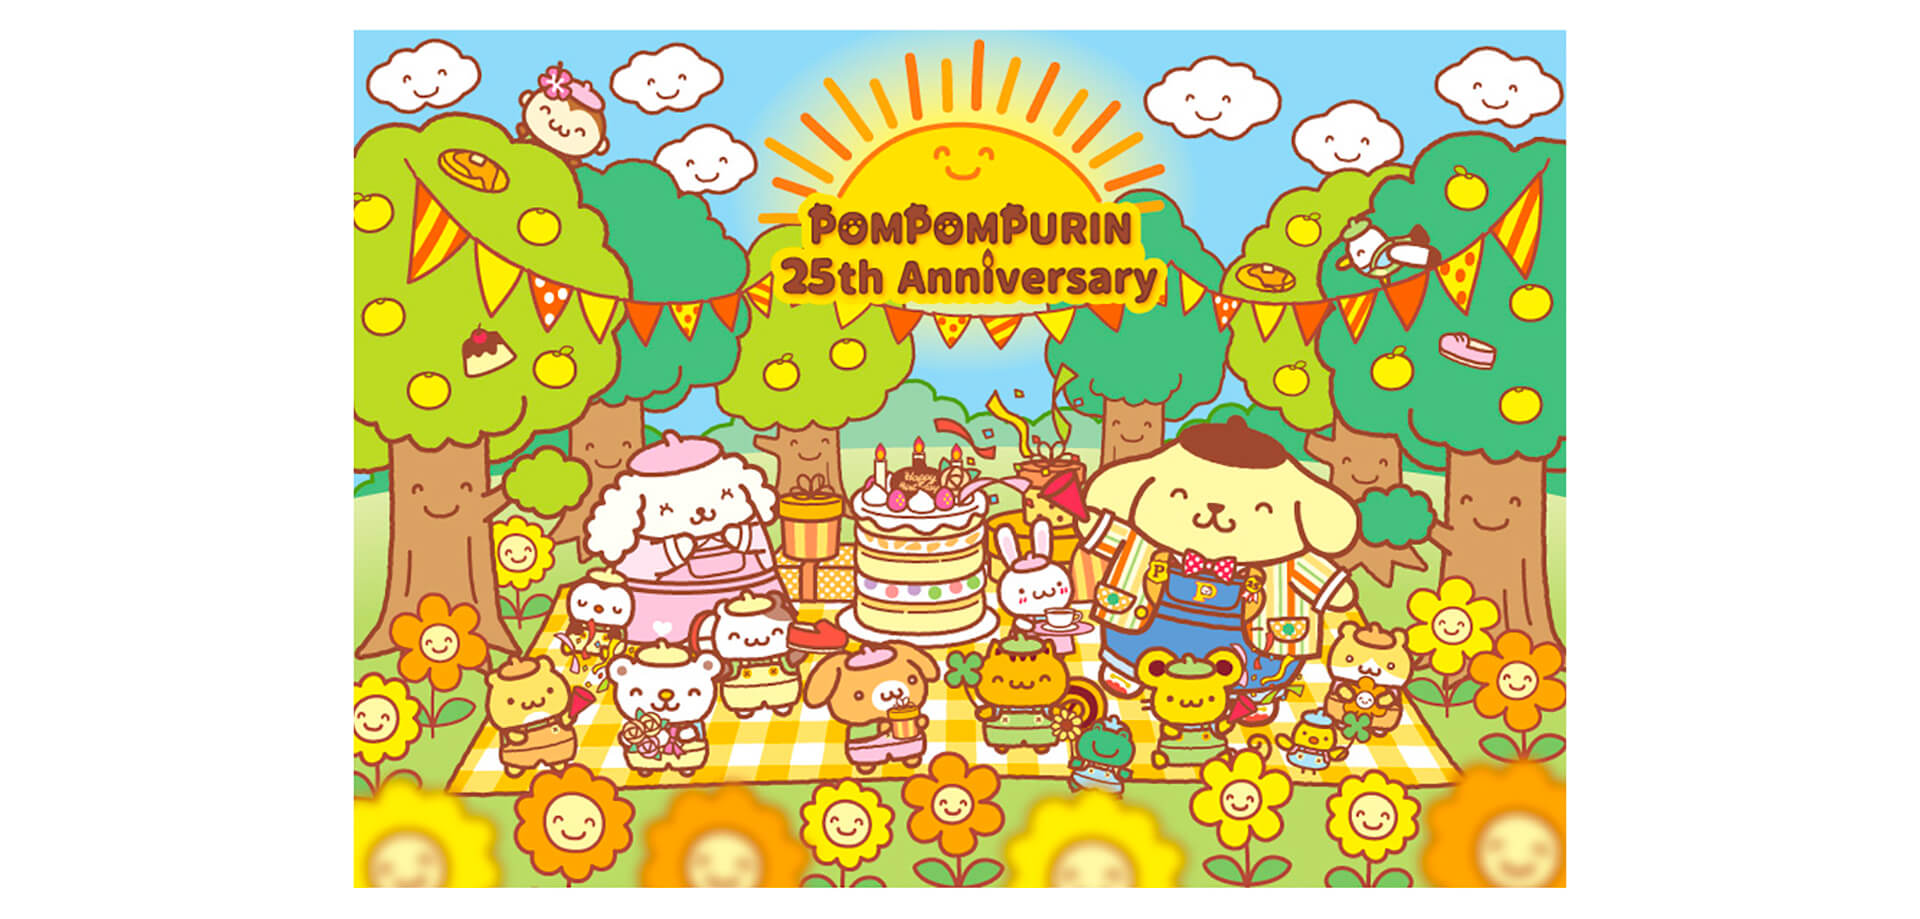 "「POMPOMPURIN 25th Anniversary ""にこにこ""プリンパーティwithチームプリン」"